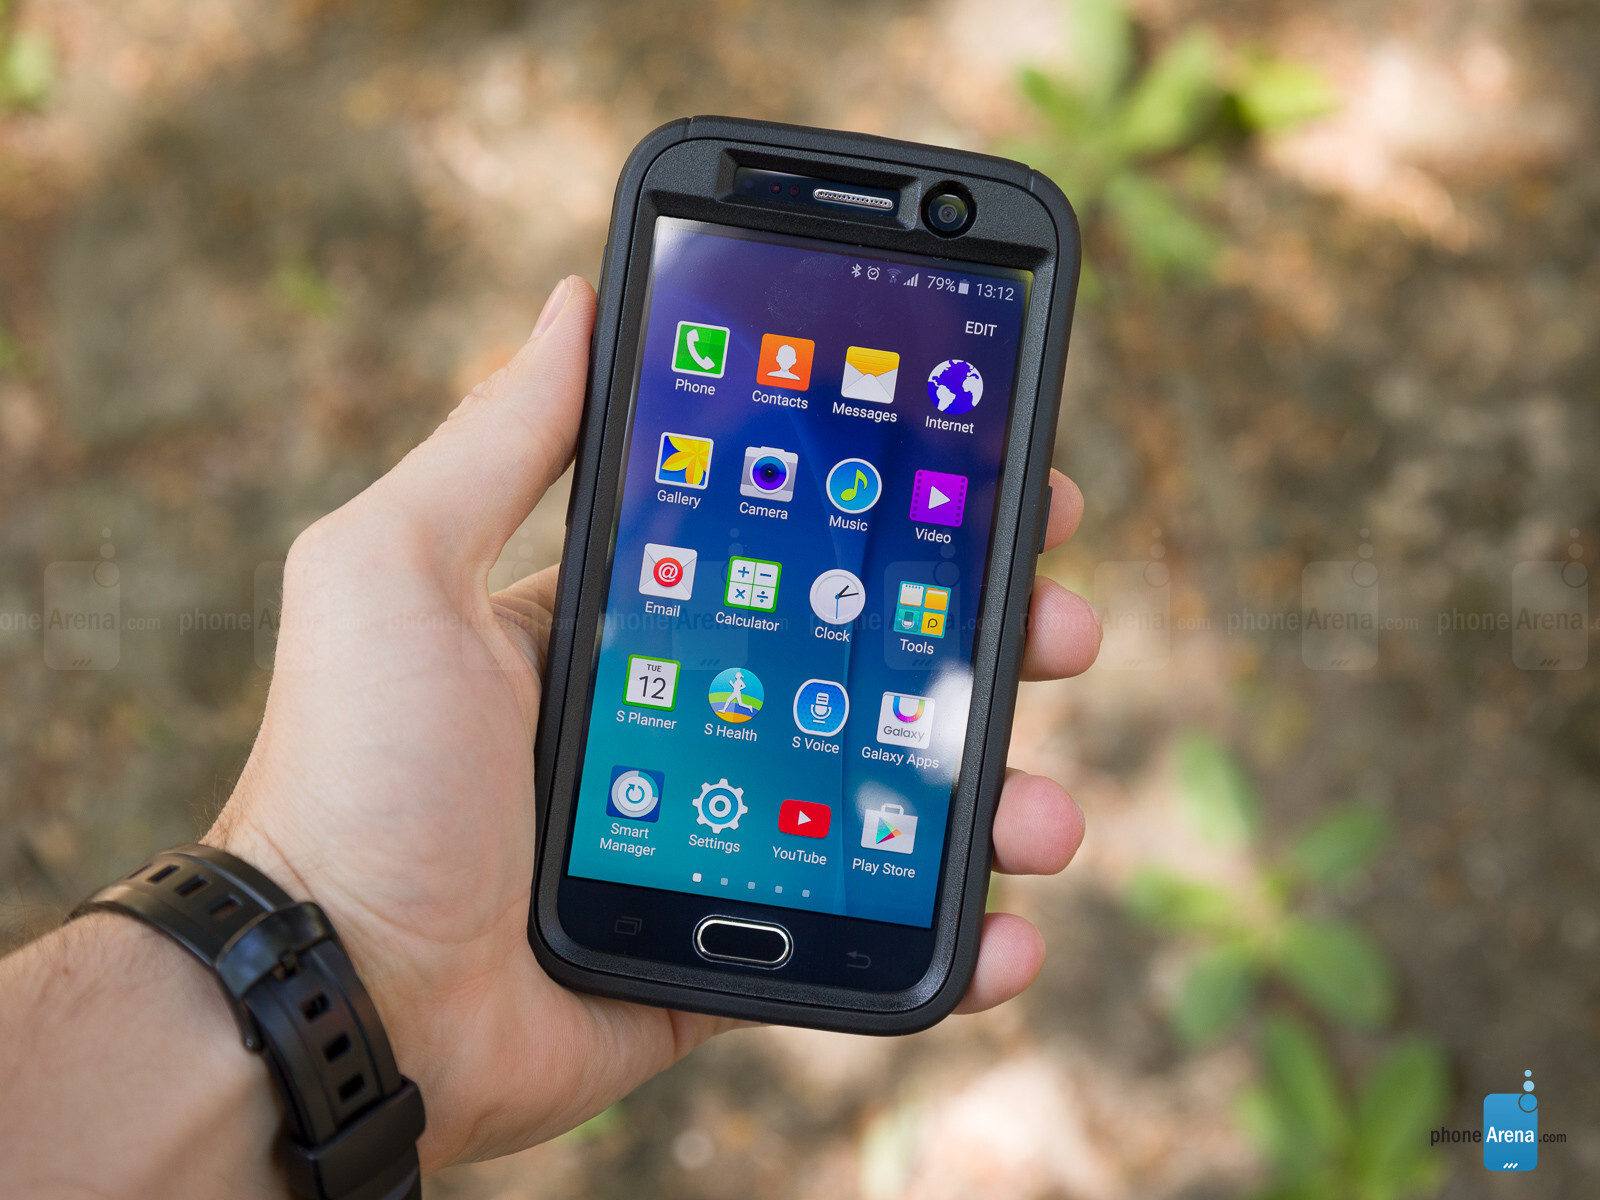 buy online d3314 38890 OtterBox Defender Rugged for Samsung Galaxy S6 case review - PhoneArena